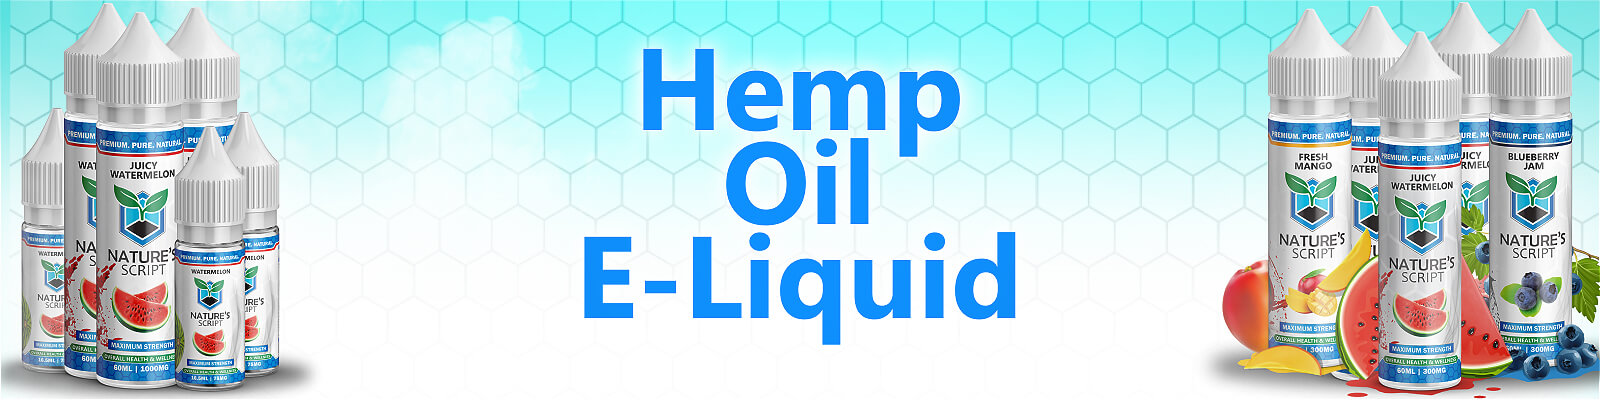 Hemp Vape Oil E-Liquids